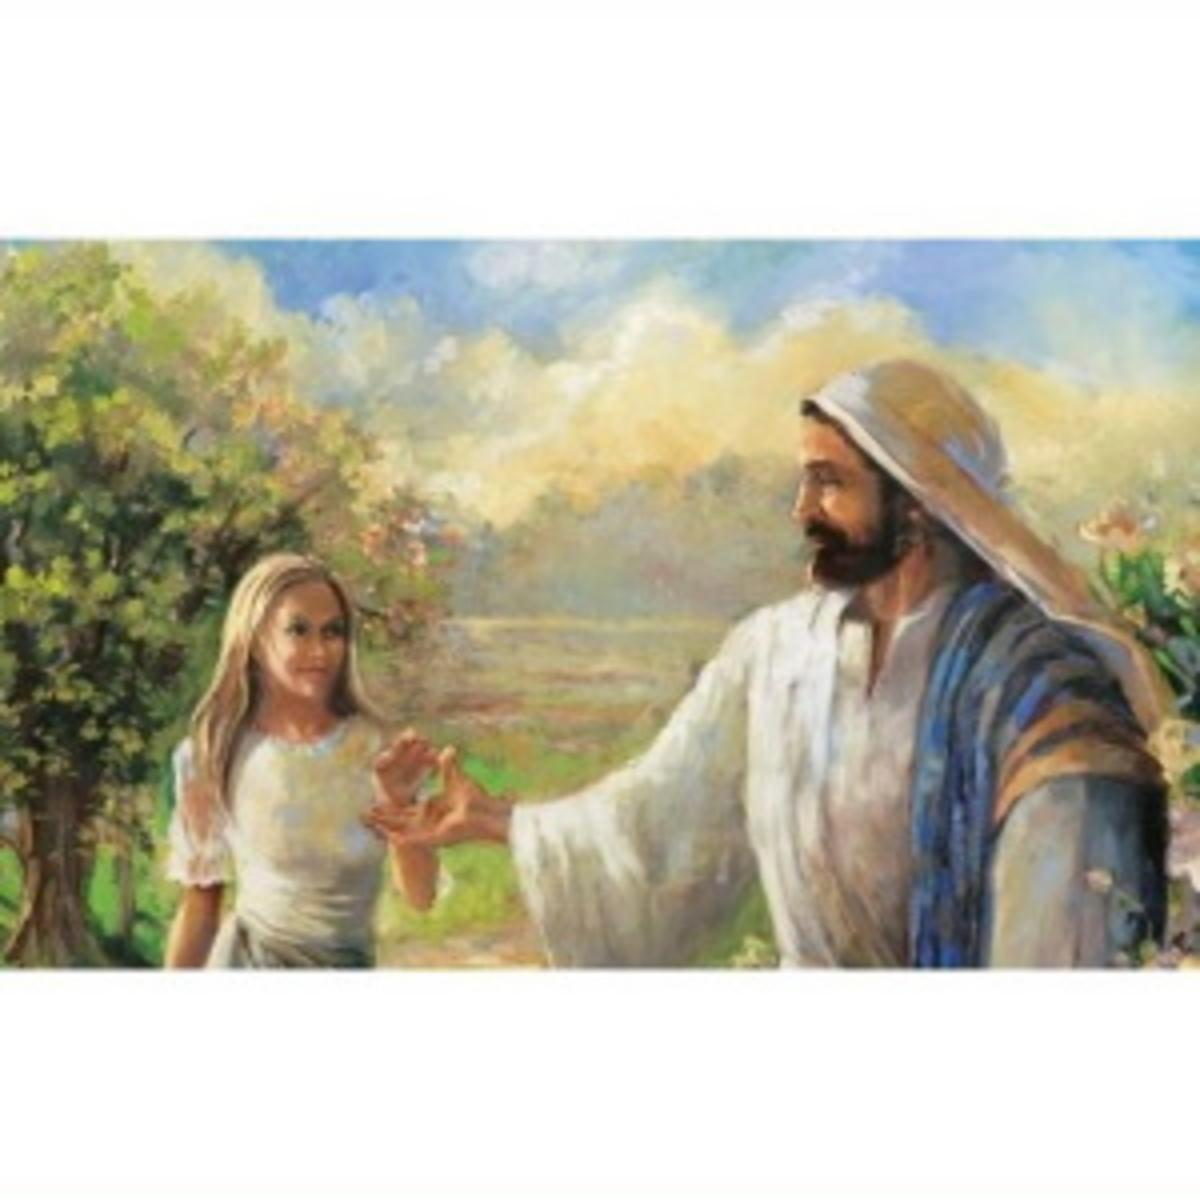 Woman with Jesus